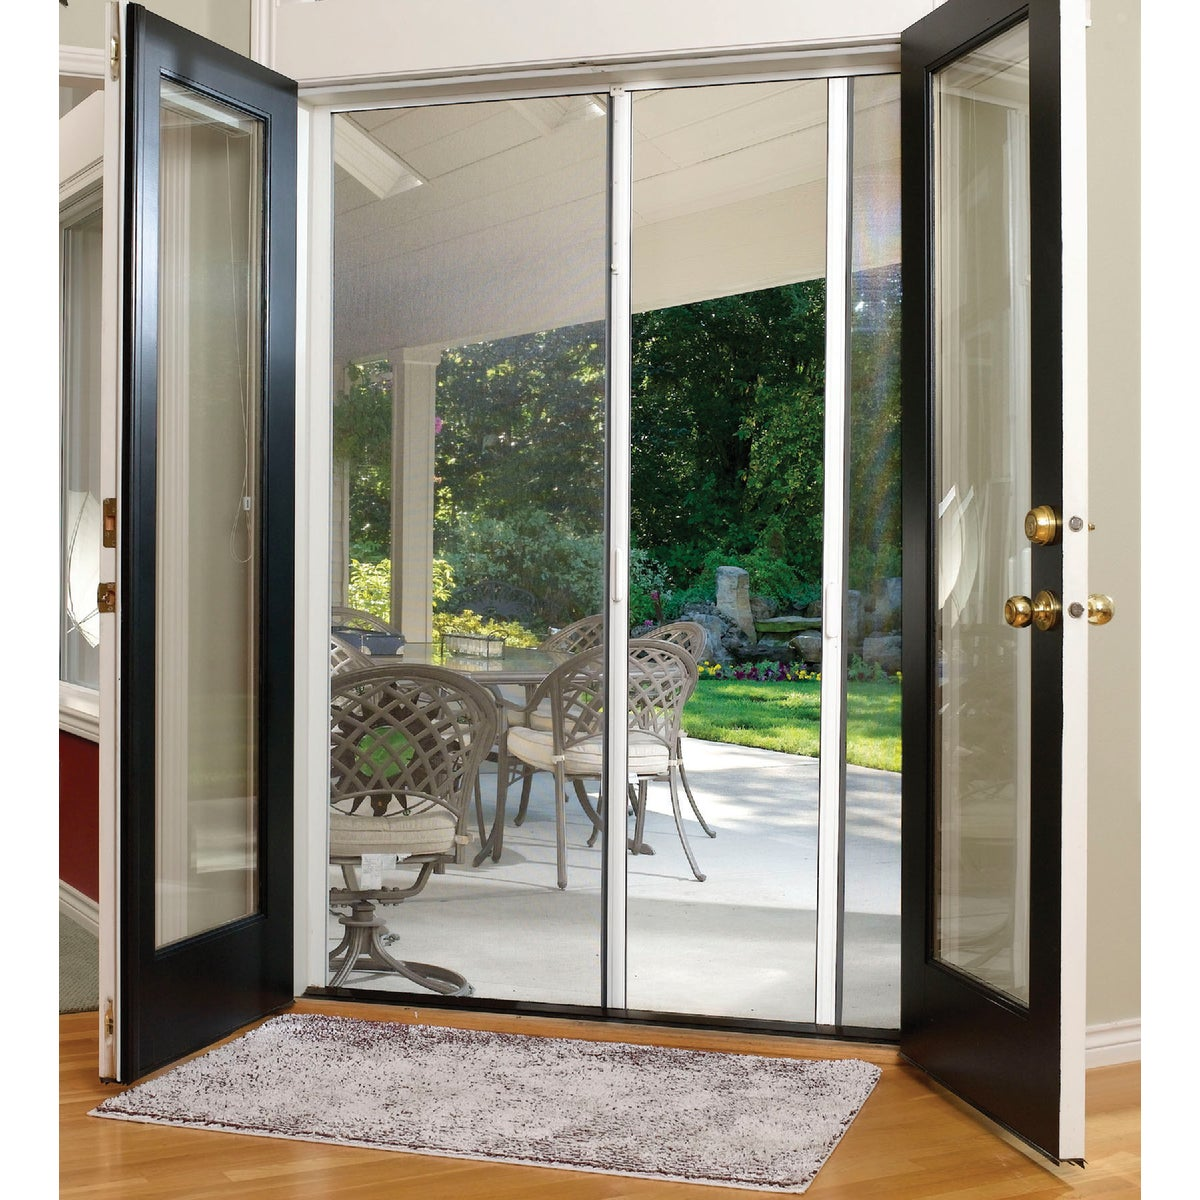 "84"" RETRACTABLE SCREEN - E200 by Larson Mfg Co"